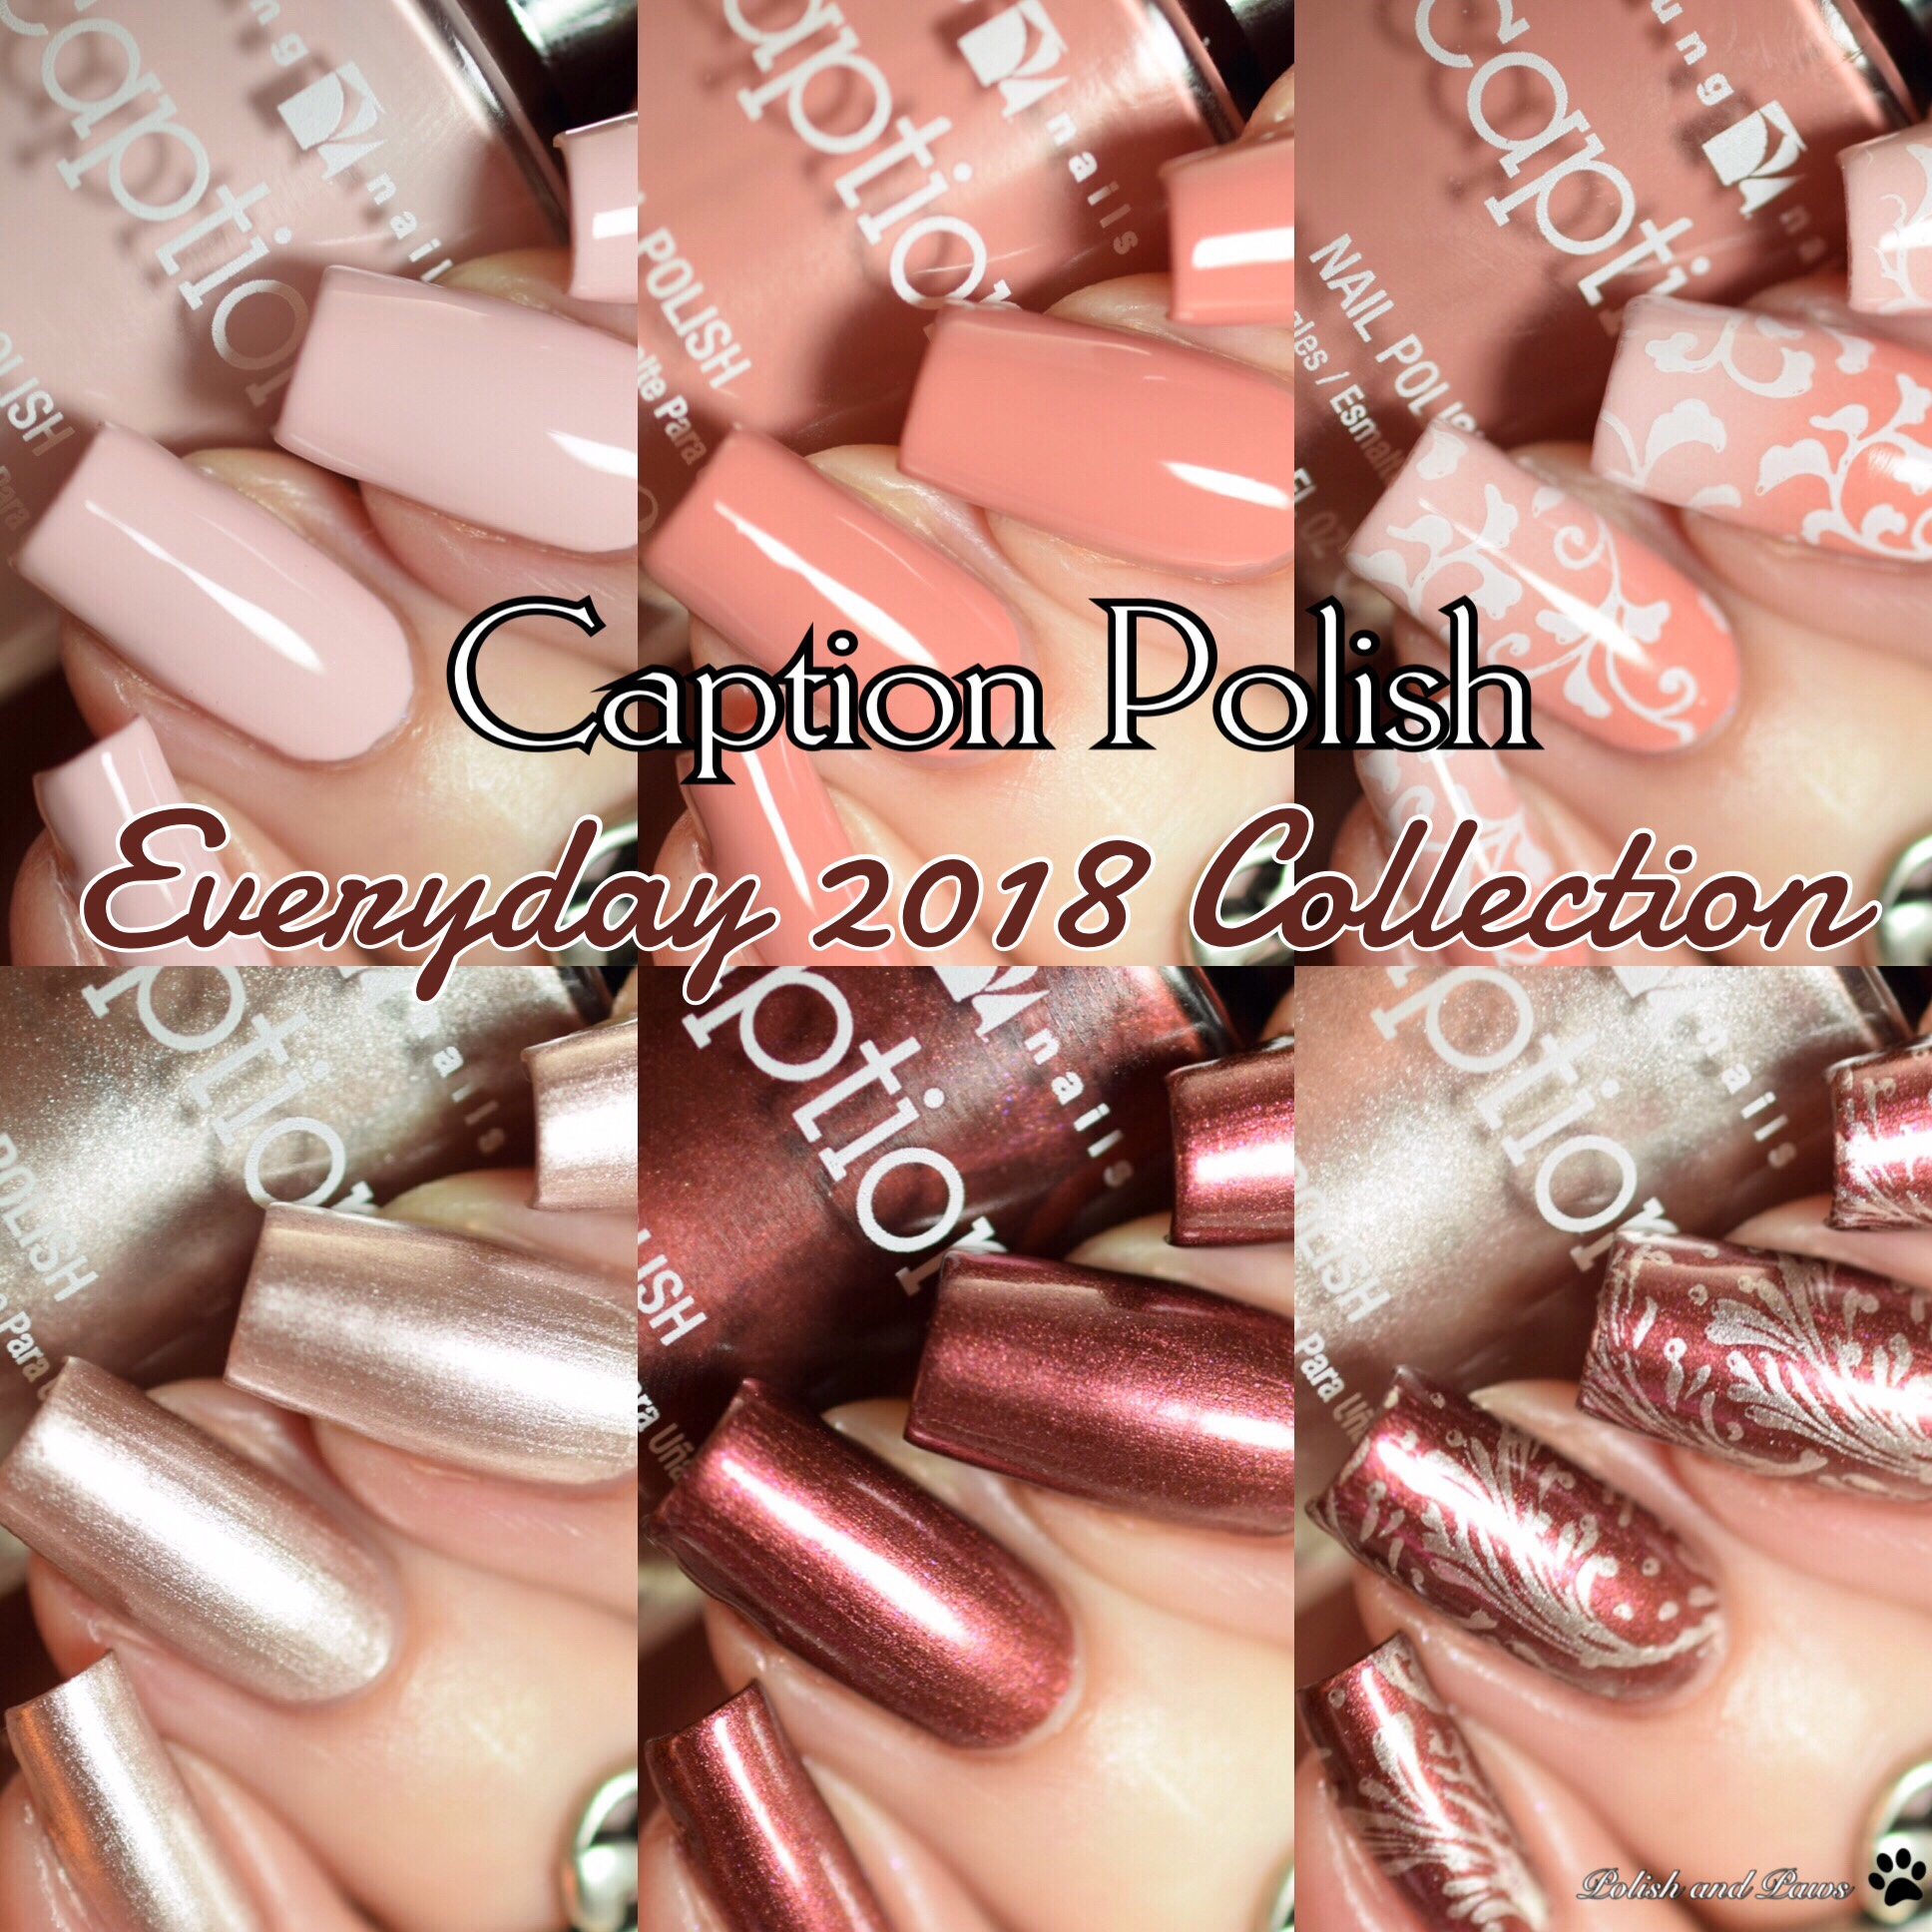 Caption Polish Everyday 2018 Collection